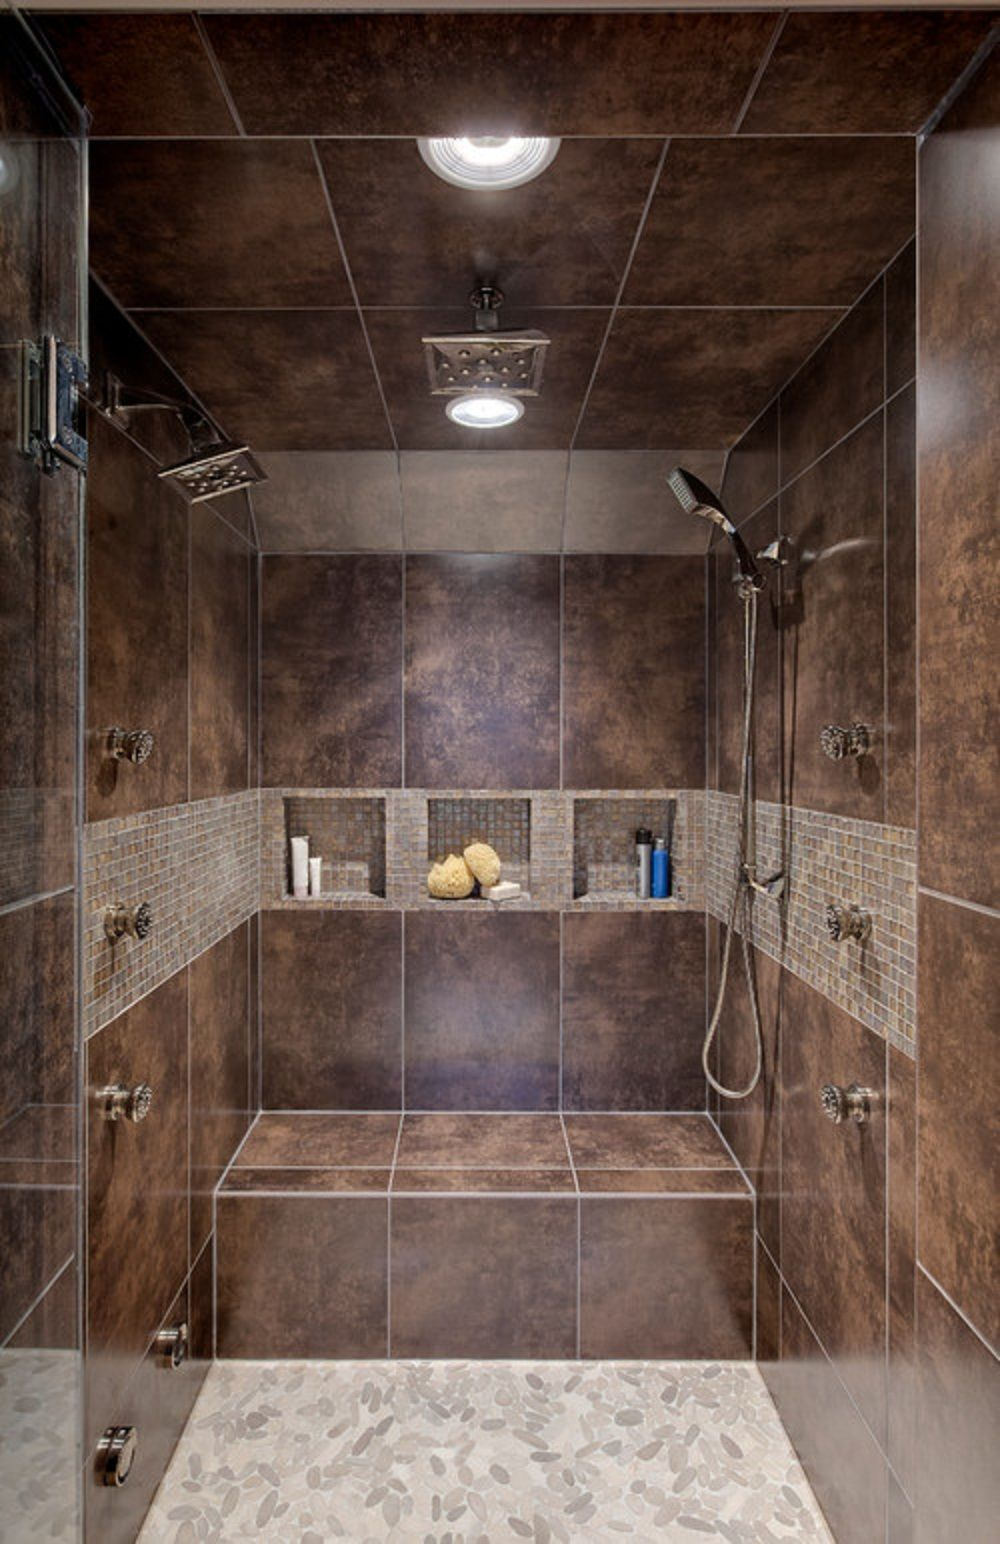 Bathroom Small Square Wall Niches Mixed With Brown Tile Bench In Classy Walk In Shower Ideas Gorgeous Design Of Shower Room Allows To Walk In Showers